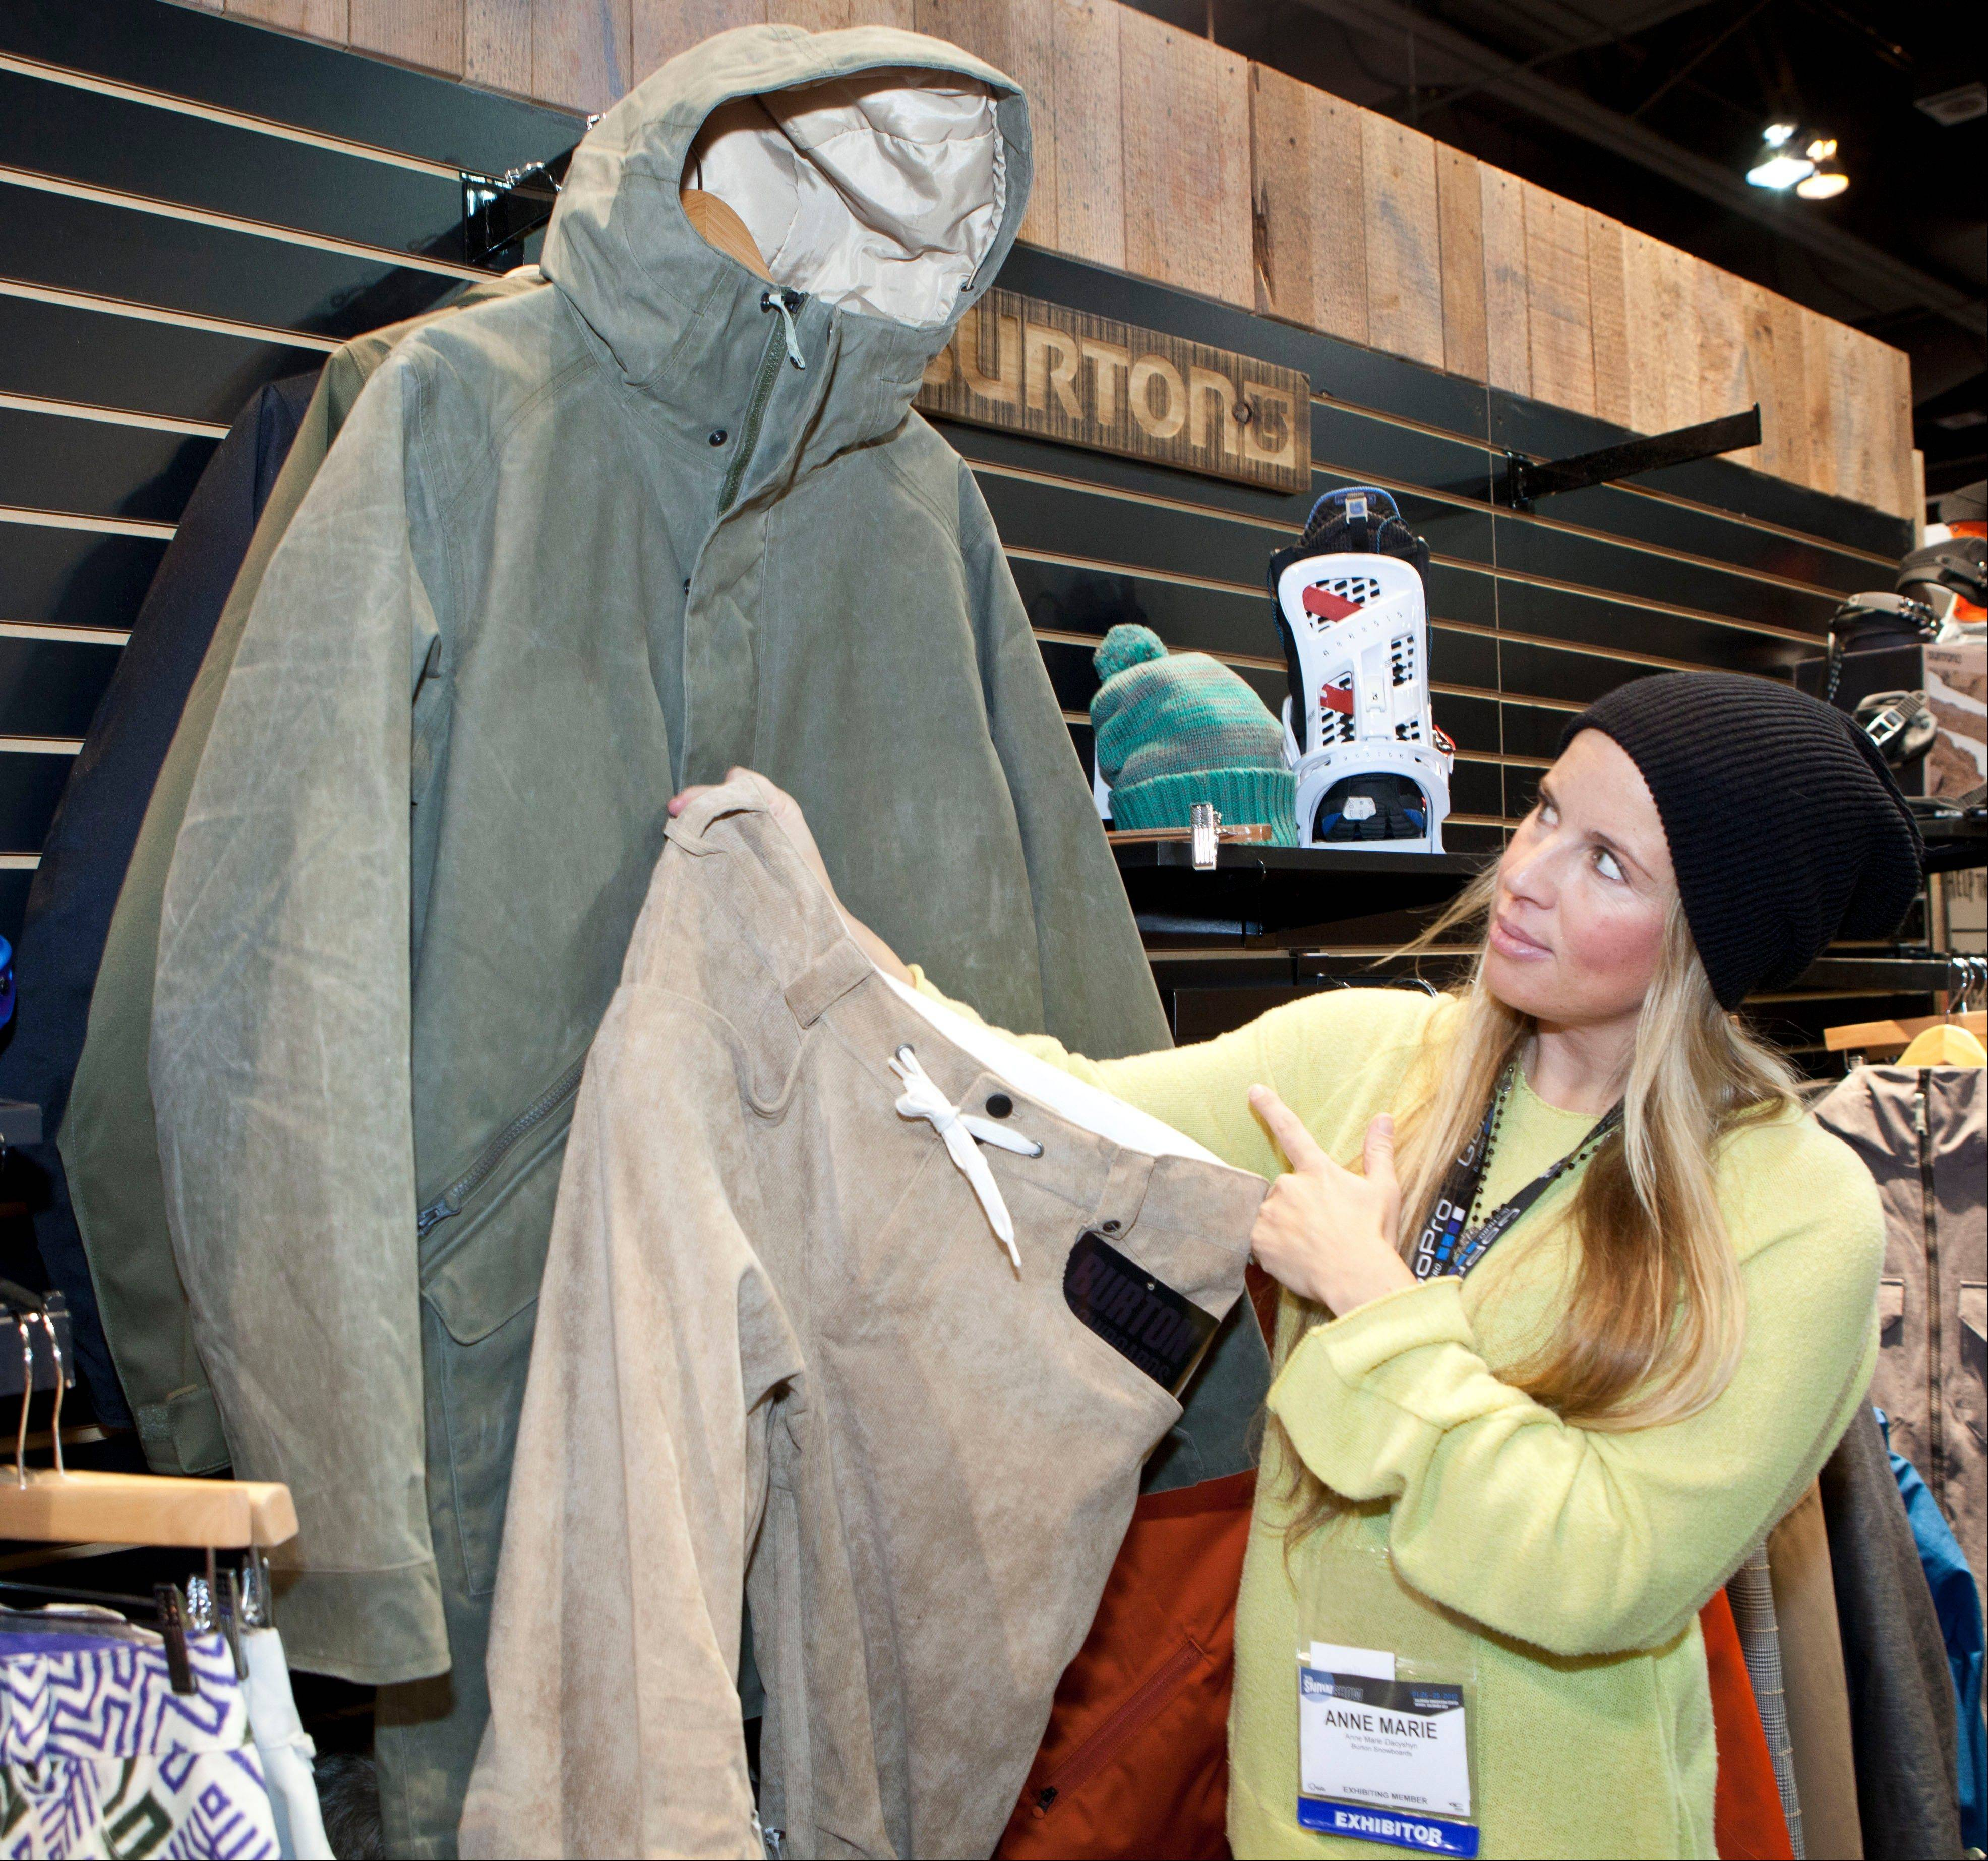 Anne Maria Dacyshyn, Global PR Director for Burton, shows Burton's newest tech apparel collection at the annual SAI Snow Show in Denver. It includes pieces that would look at home on a city street but also work for the slopes. The men's collection has a waterproof soft-shell hoodie with fleece lining and pants designed with insulation and water-repellant materials, and a technical, high-performance corduroy.